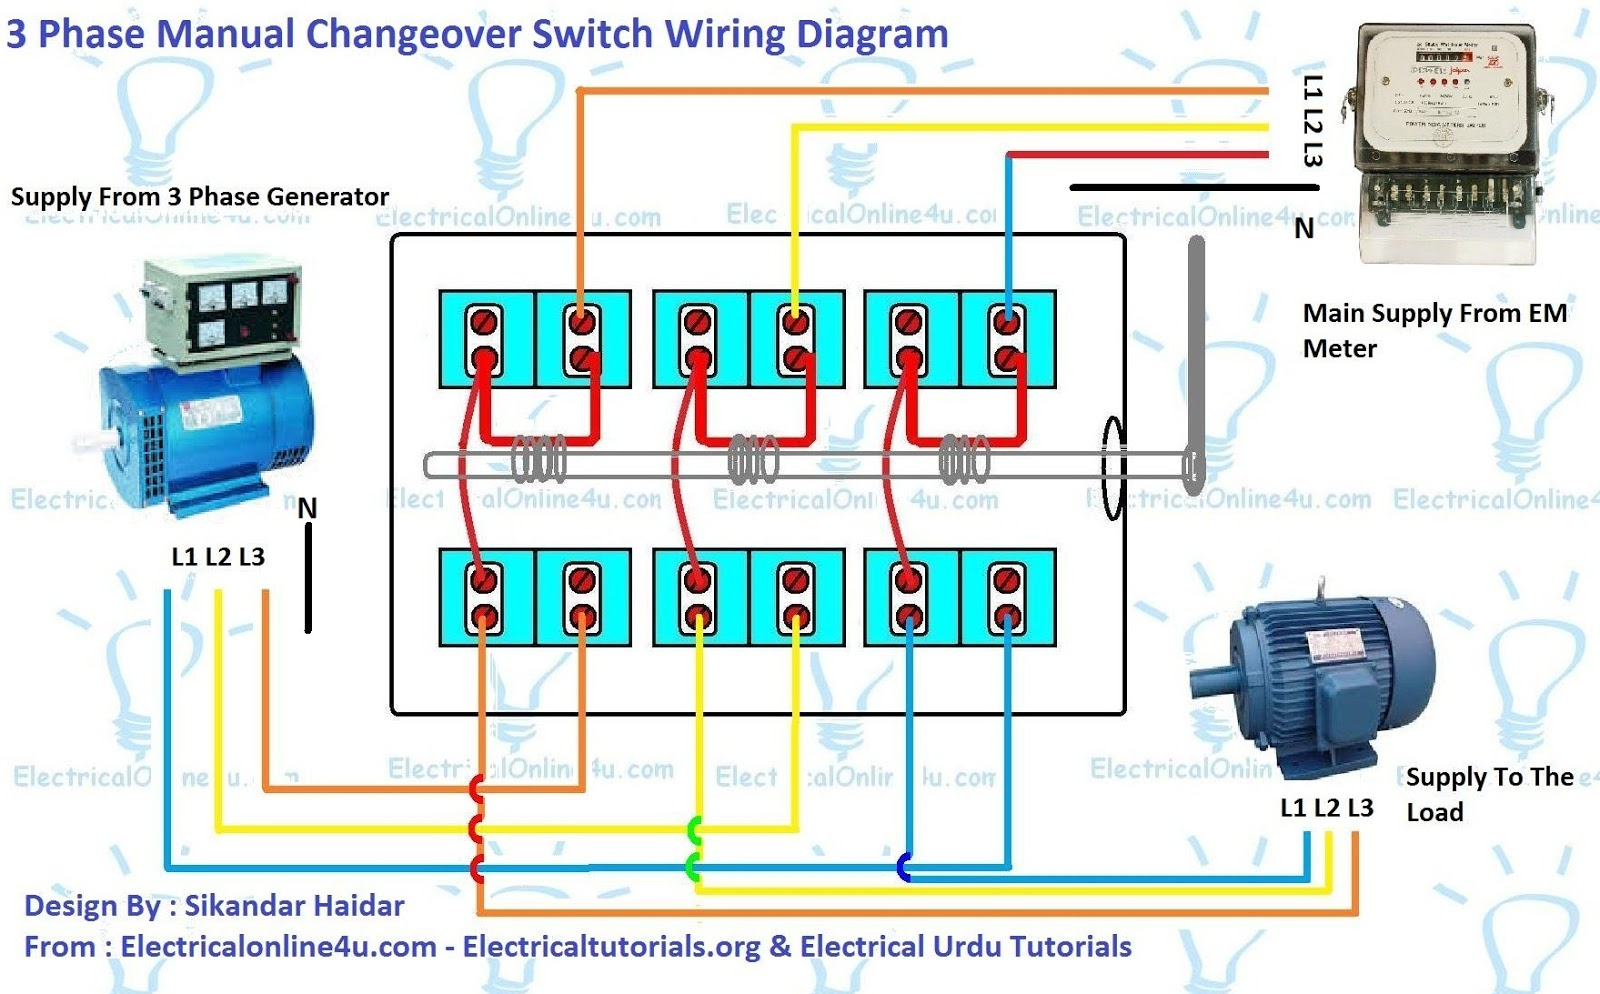 3 Phase Switch Wiring Diagram: 3 Phase Manual Changeover Switch Wiring Diagram For Generator,Design